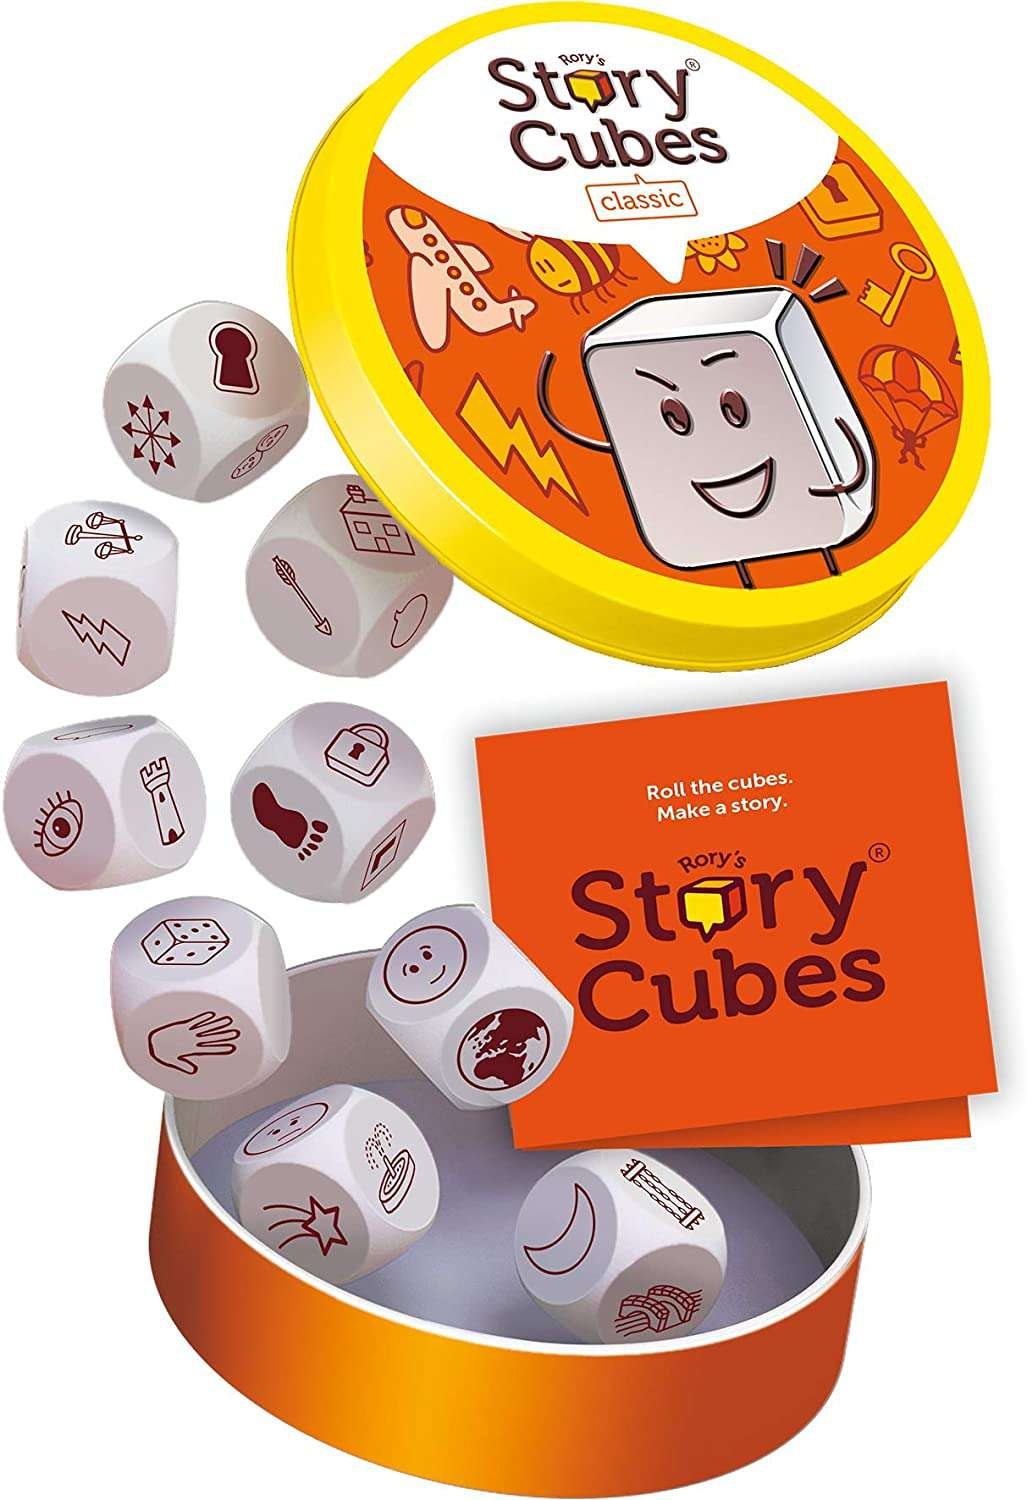 Zygomatic Rory's Story Cubes